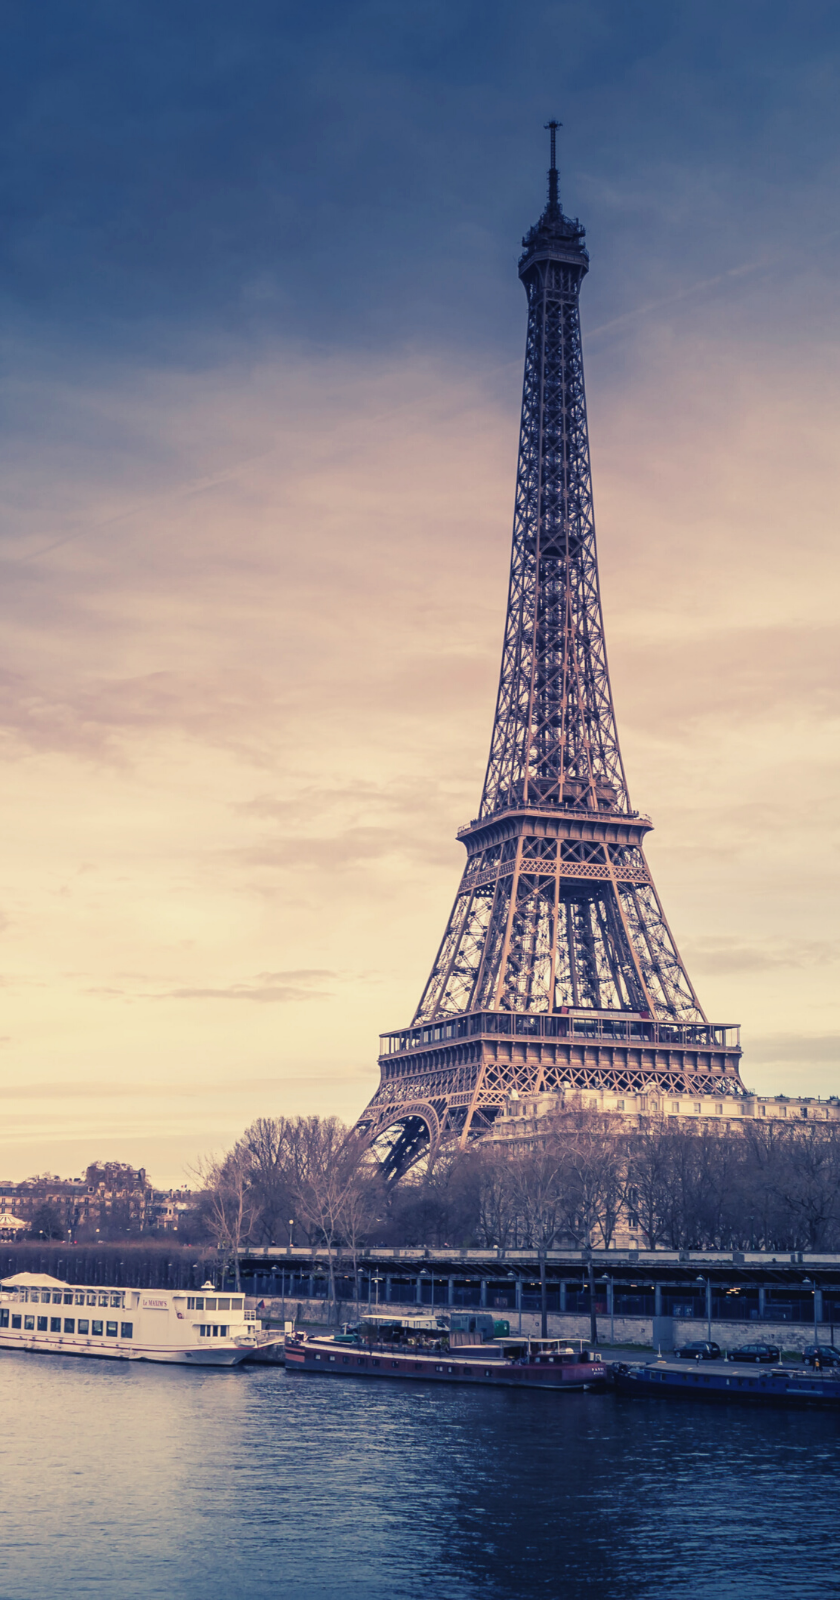 Wallpapers For Iphone Best Paris Tumblr Aesthetics Wallpapers Tgbl In 2020 Eiffel Tower Paris Background France Wallpaper